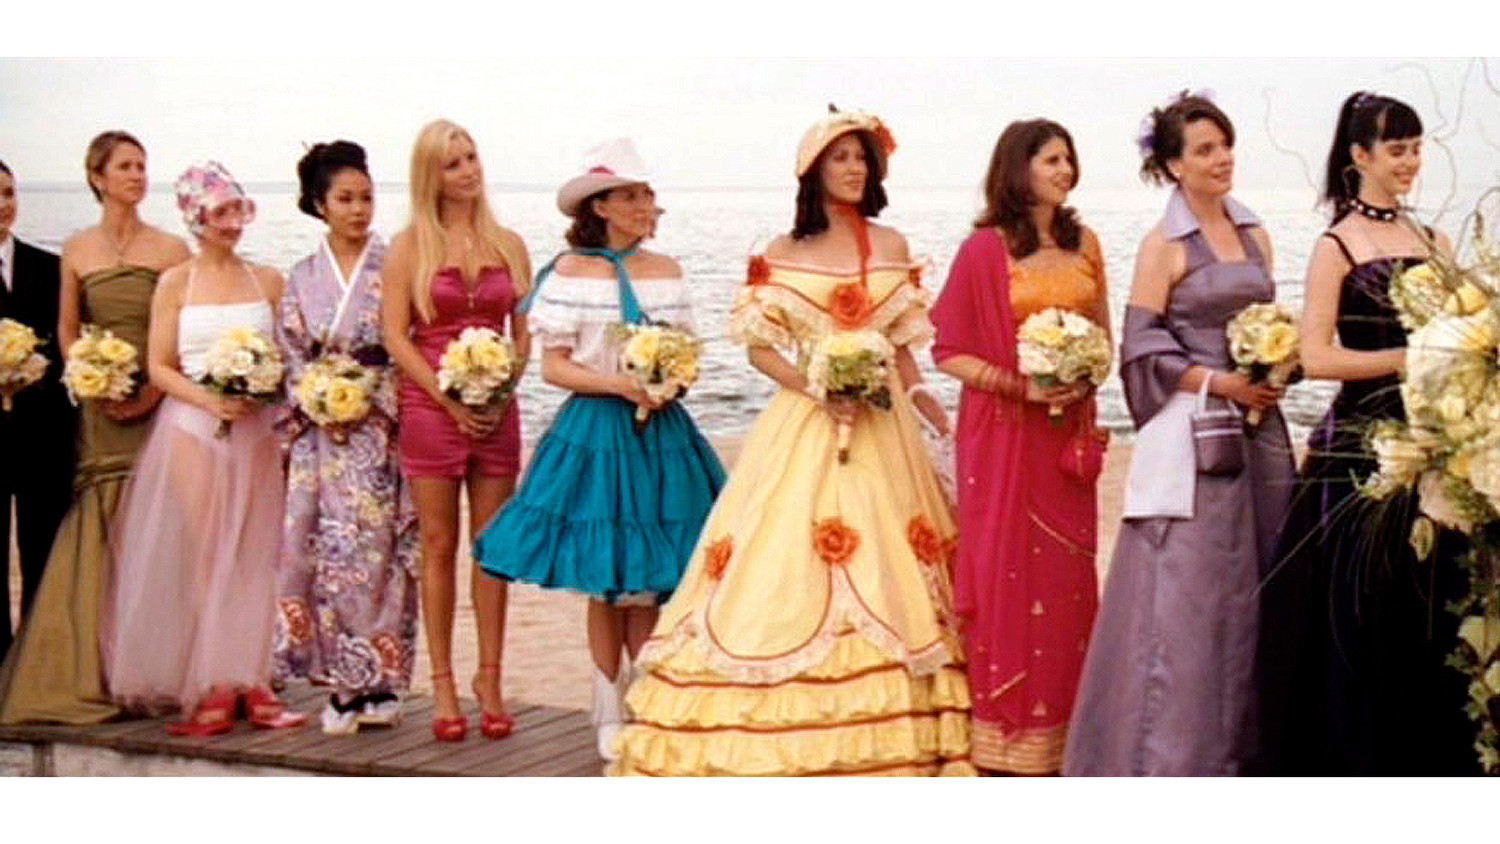 5 women reveal the worst bridesmaid dress they ever wore martha 5 women reveal the worst bridesmaid dress they ever wore martha stewart weddings ombrellifo Images